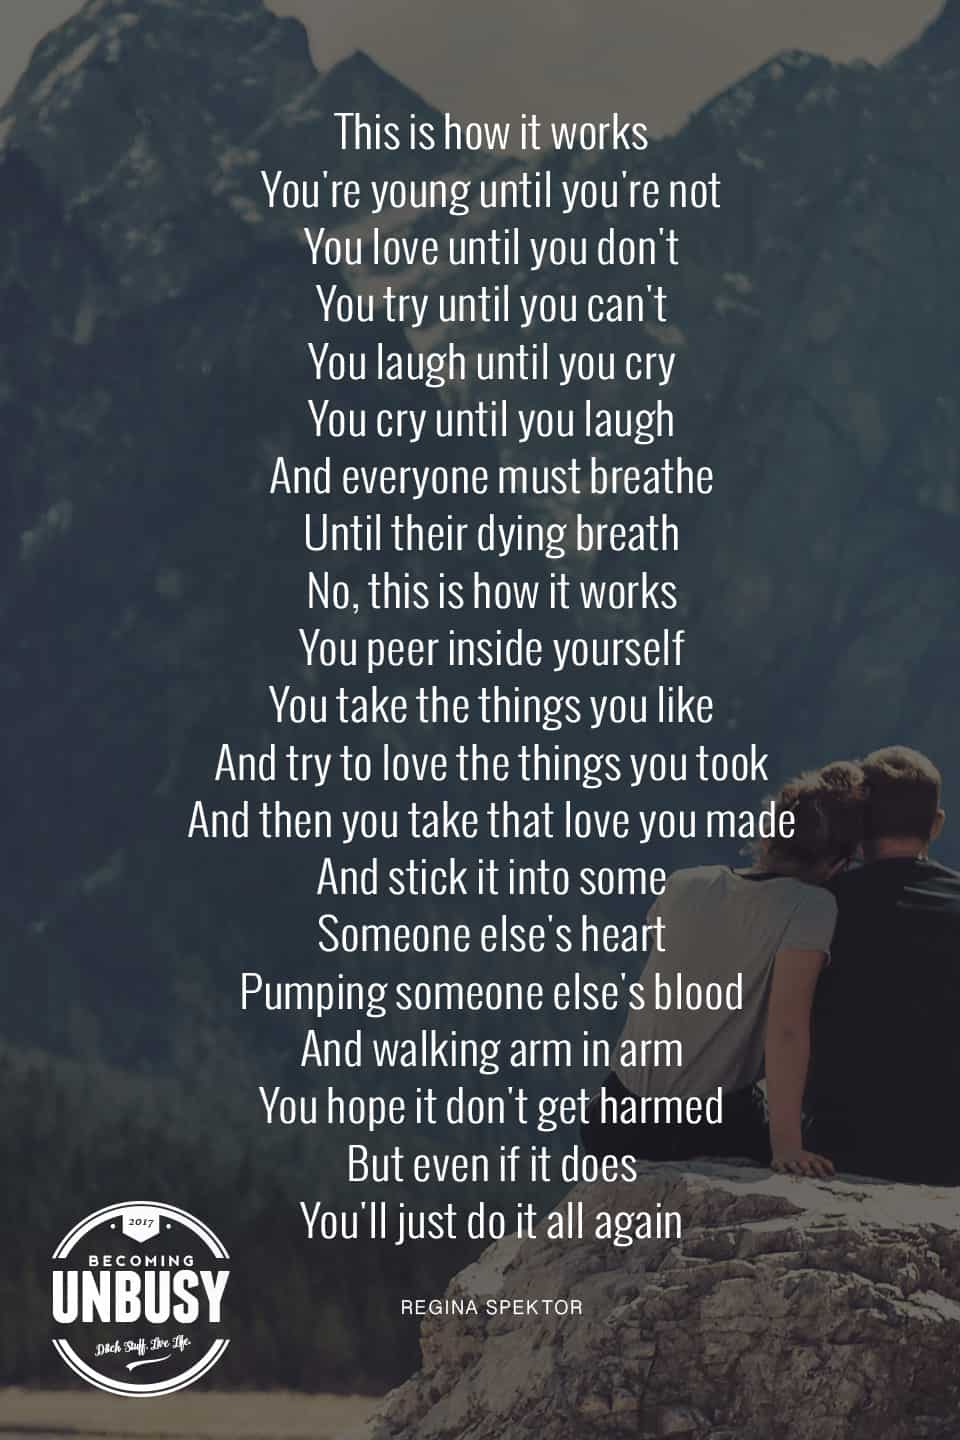 This is how it works, You're young until you're not, You love until you don't, You try until you can't, You laugh until you cry, You cry until you laugh, And everyone must breathe, Until their dying breath #poems #lifequotes #poetry *Loving this collection of 12 Poems About Life For a Beautiful Life Well-Lived